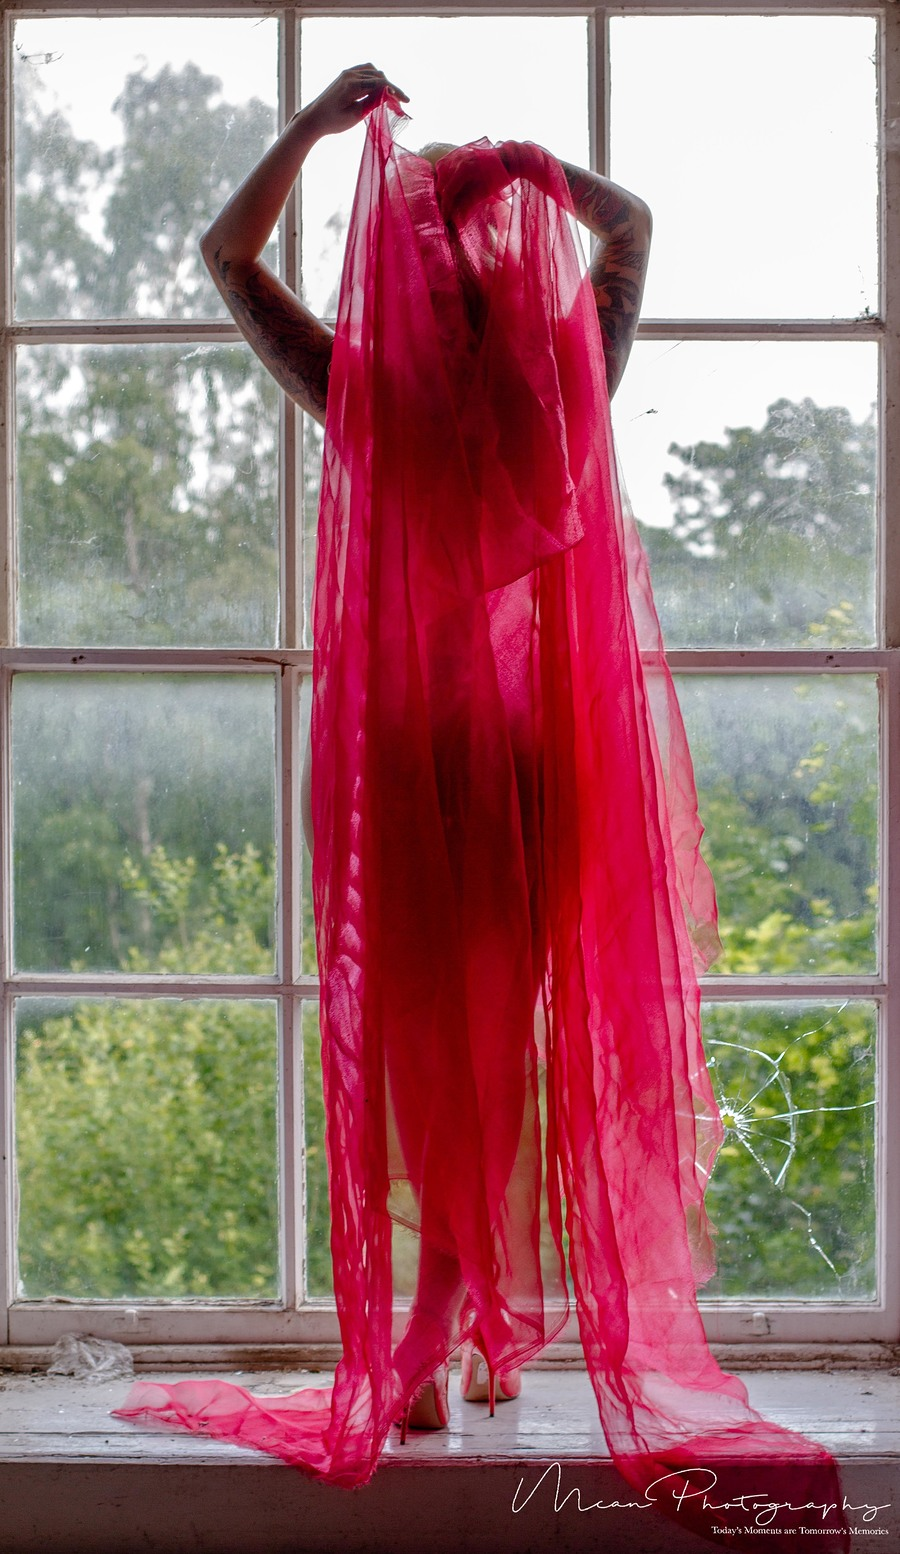 In the window / Photography by Mcan Photography Ltd (Ste), Model DarlaBlack666 / Uploaded 27th June 2019 @ 10:11 PM